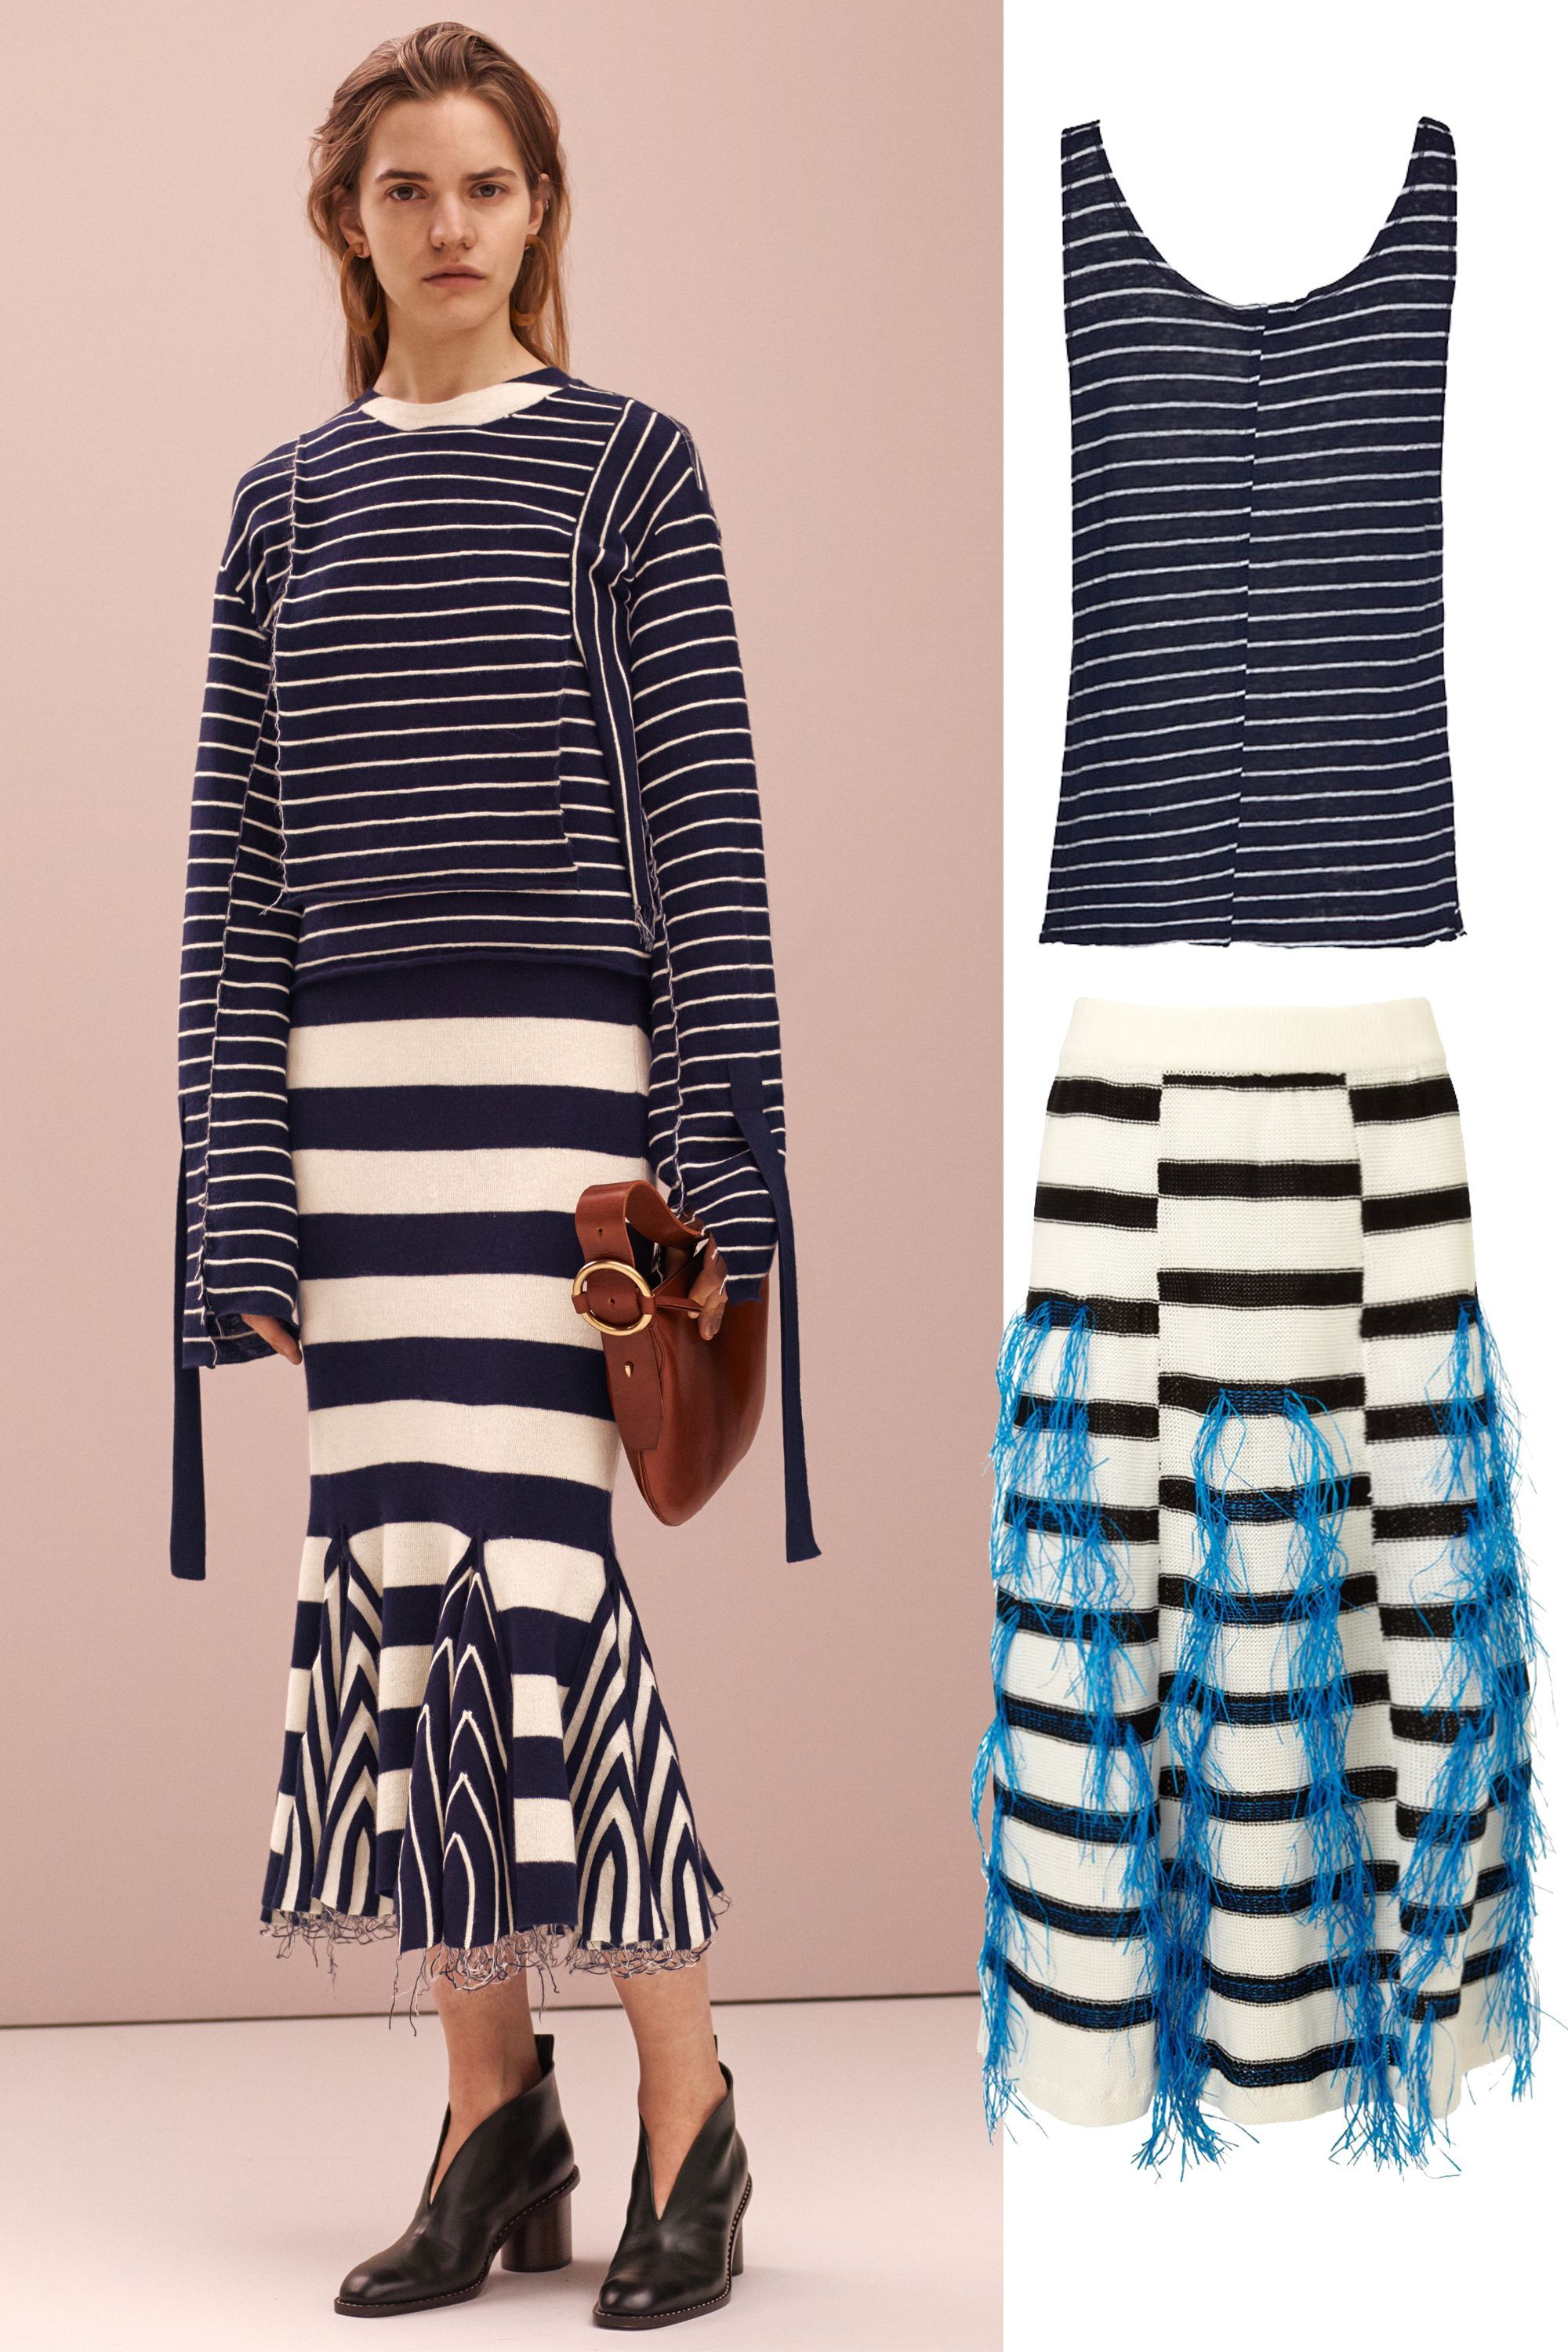 "&lt;p&gt;Mix all your stripes together! It helps that both of these have different base colors&mdash;navy with white accents on top and white with navy accents on bottom. &lt;/p&gt; &lt;p&gt;Frame Striped Tank Top, $88; &lt;a target=""_blank"" href=""http://rstyle.me/~57Szi""&gt;intermixonline.com&lt;/a&gt;&lt;/p&gt; &lt;p&gt;Thakoon White Raffia Fringe Knitted Skirt, $890; &lt;a target=""_blank"" href=""http://rstyle.me/n/z38xkbc6jf http://rstyle.me/n/z38xkbc6jf ""&gt;avenue32.com&lt;/a&gt;&lt;/p&gt; &lt;p&gt; <!--EndFragment-->&lt;/p&gt;"